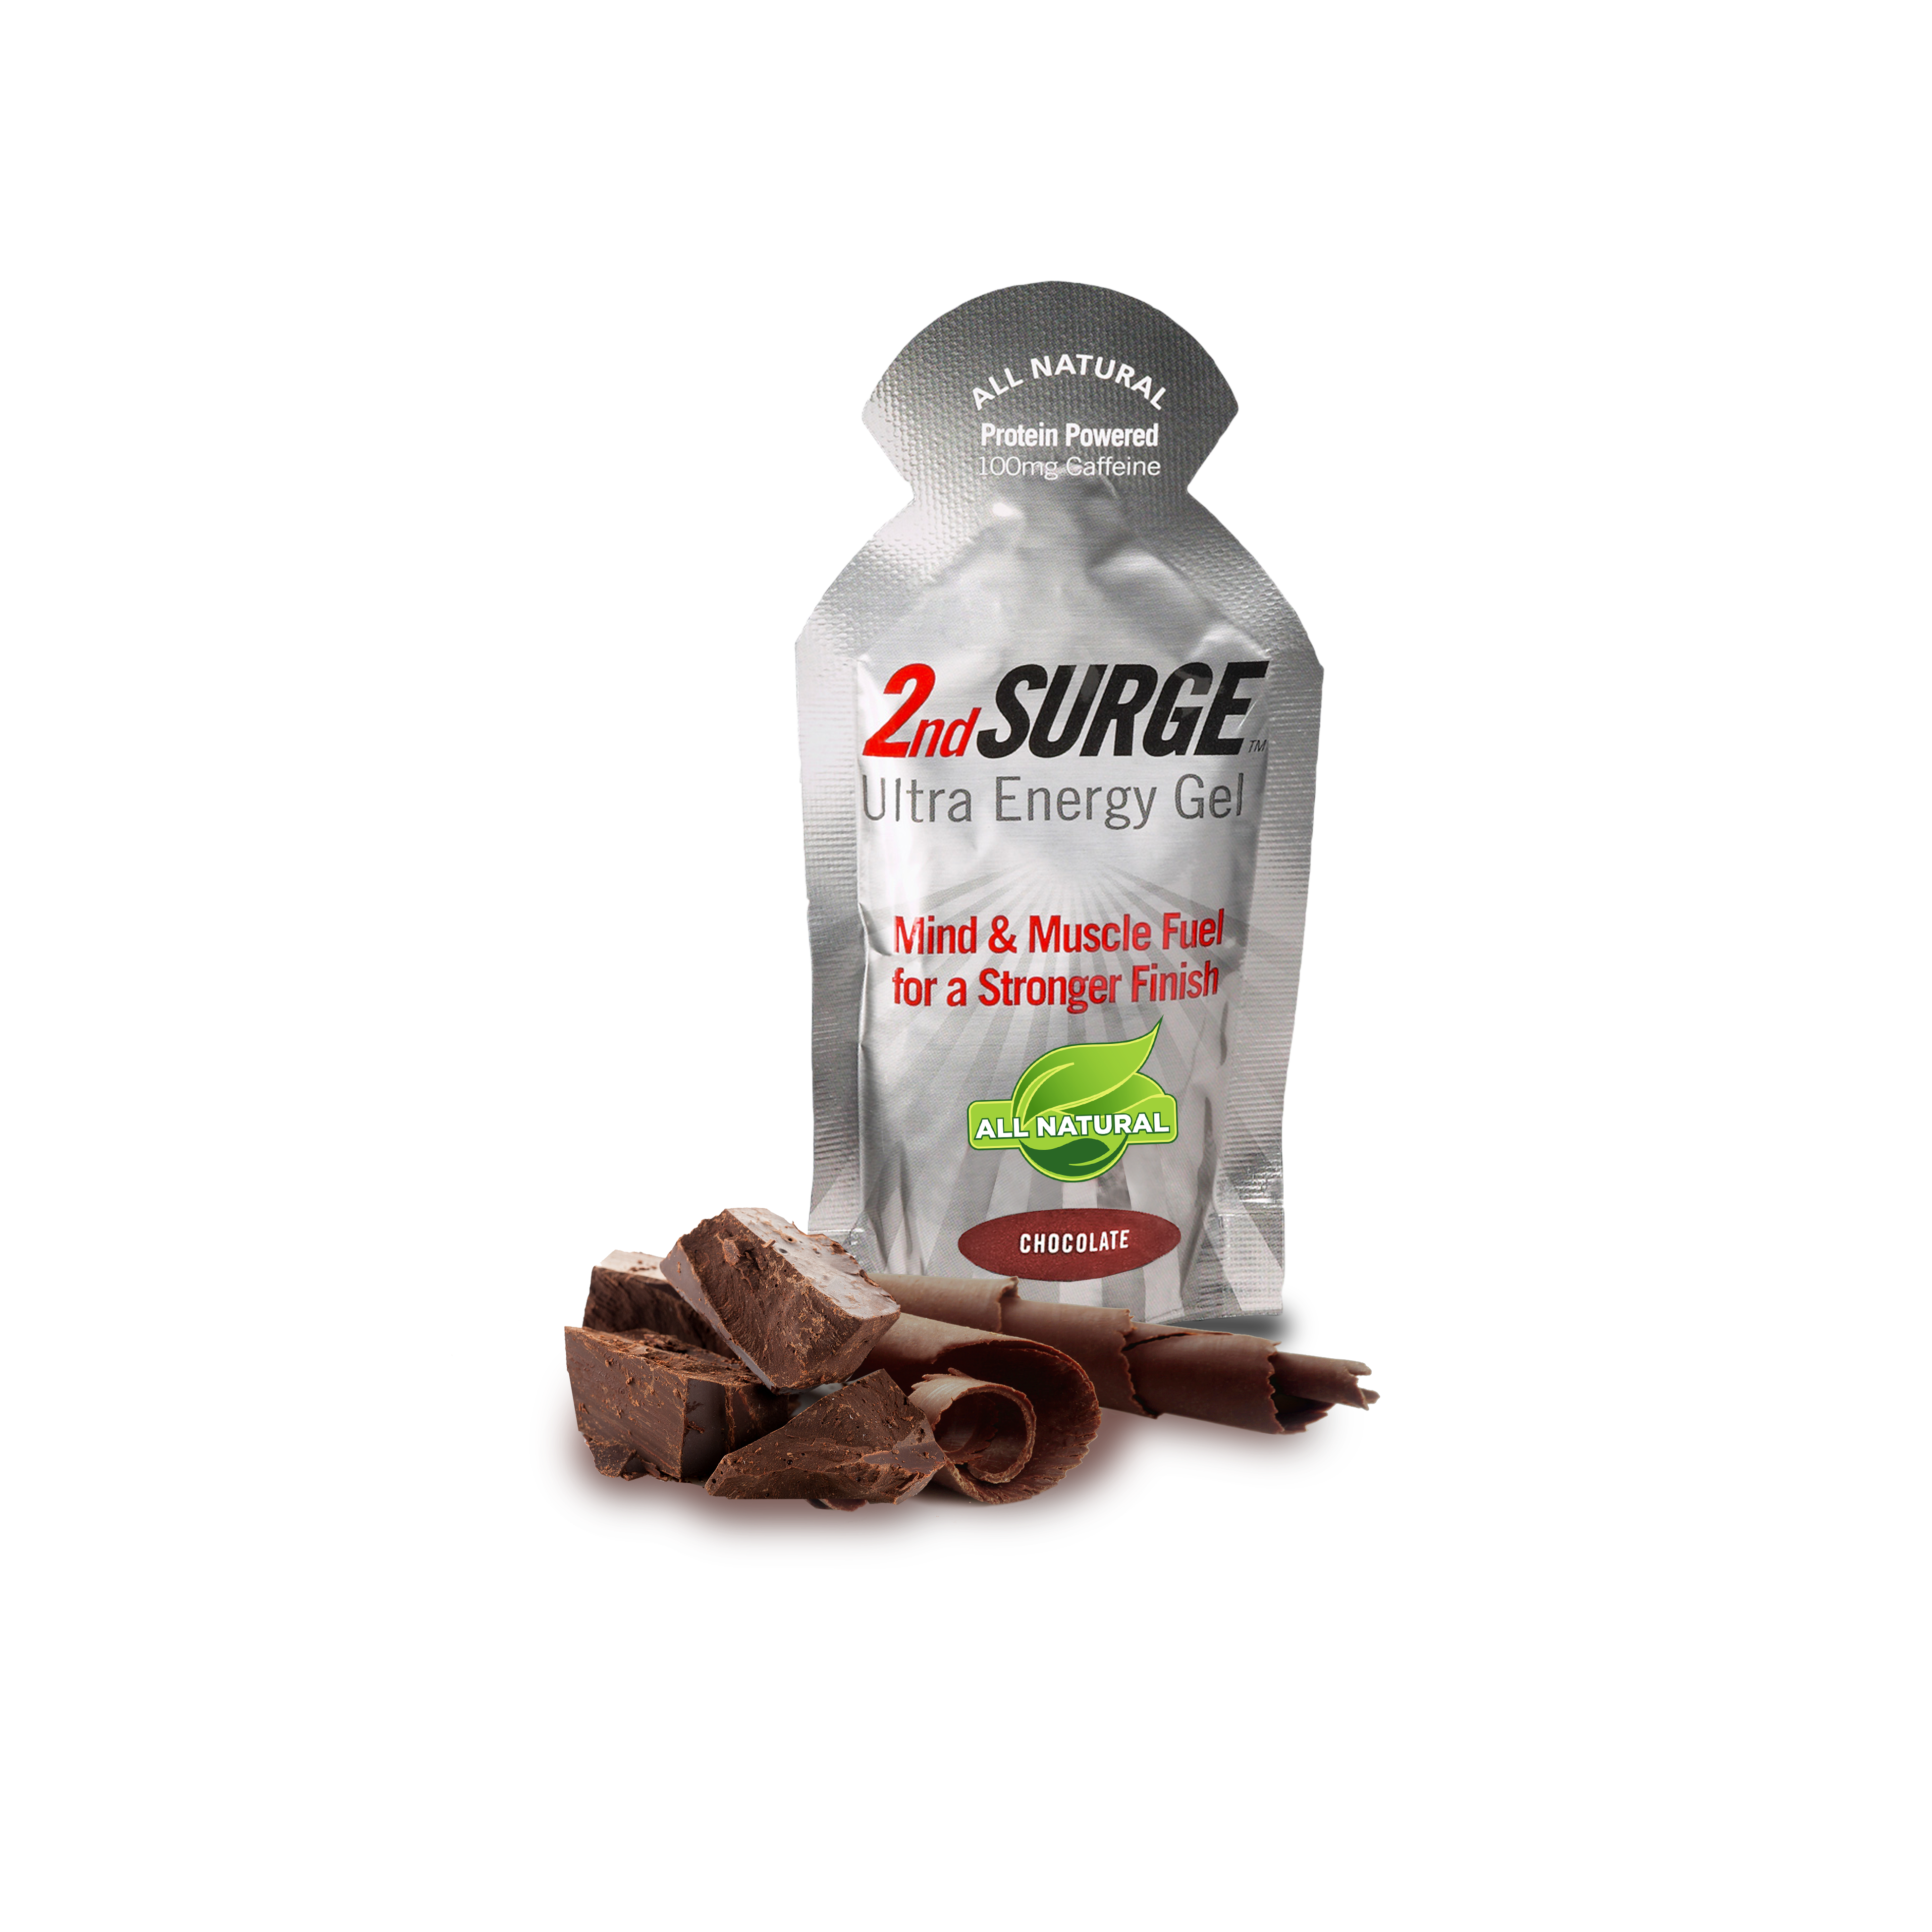 2nd Surge All Natural Energy Gel With 100 Mg Of Caffeine